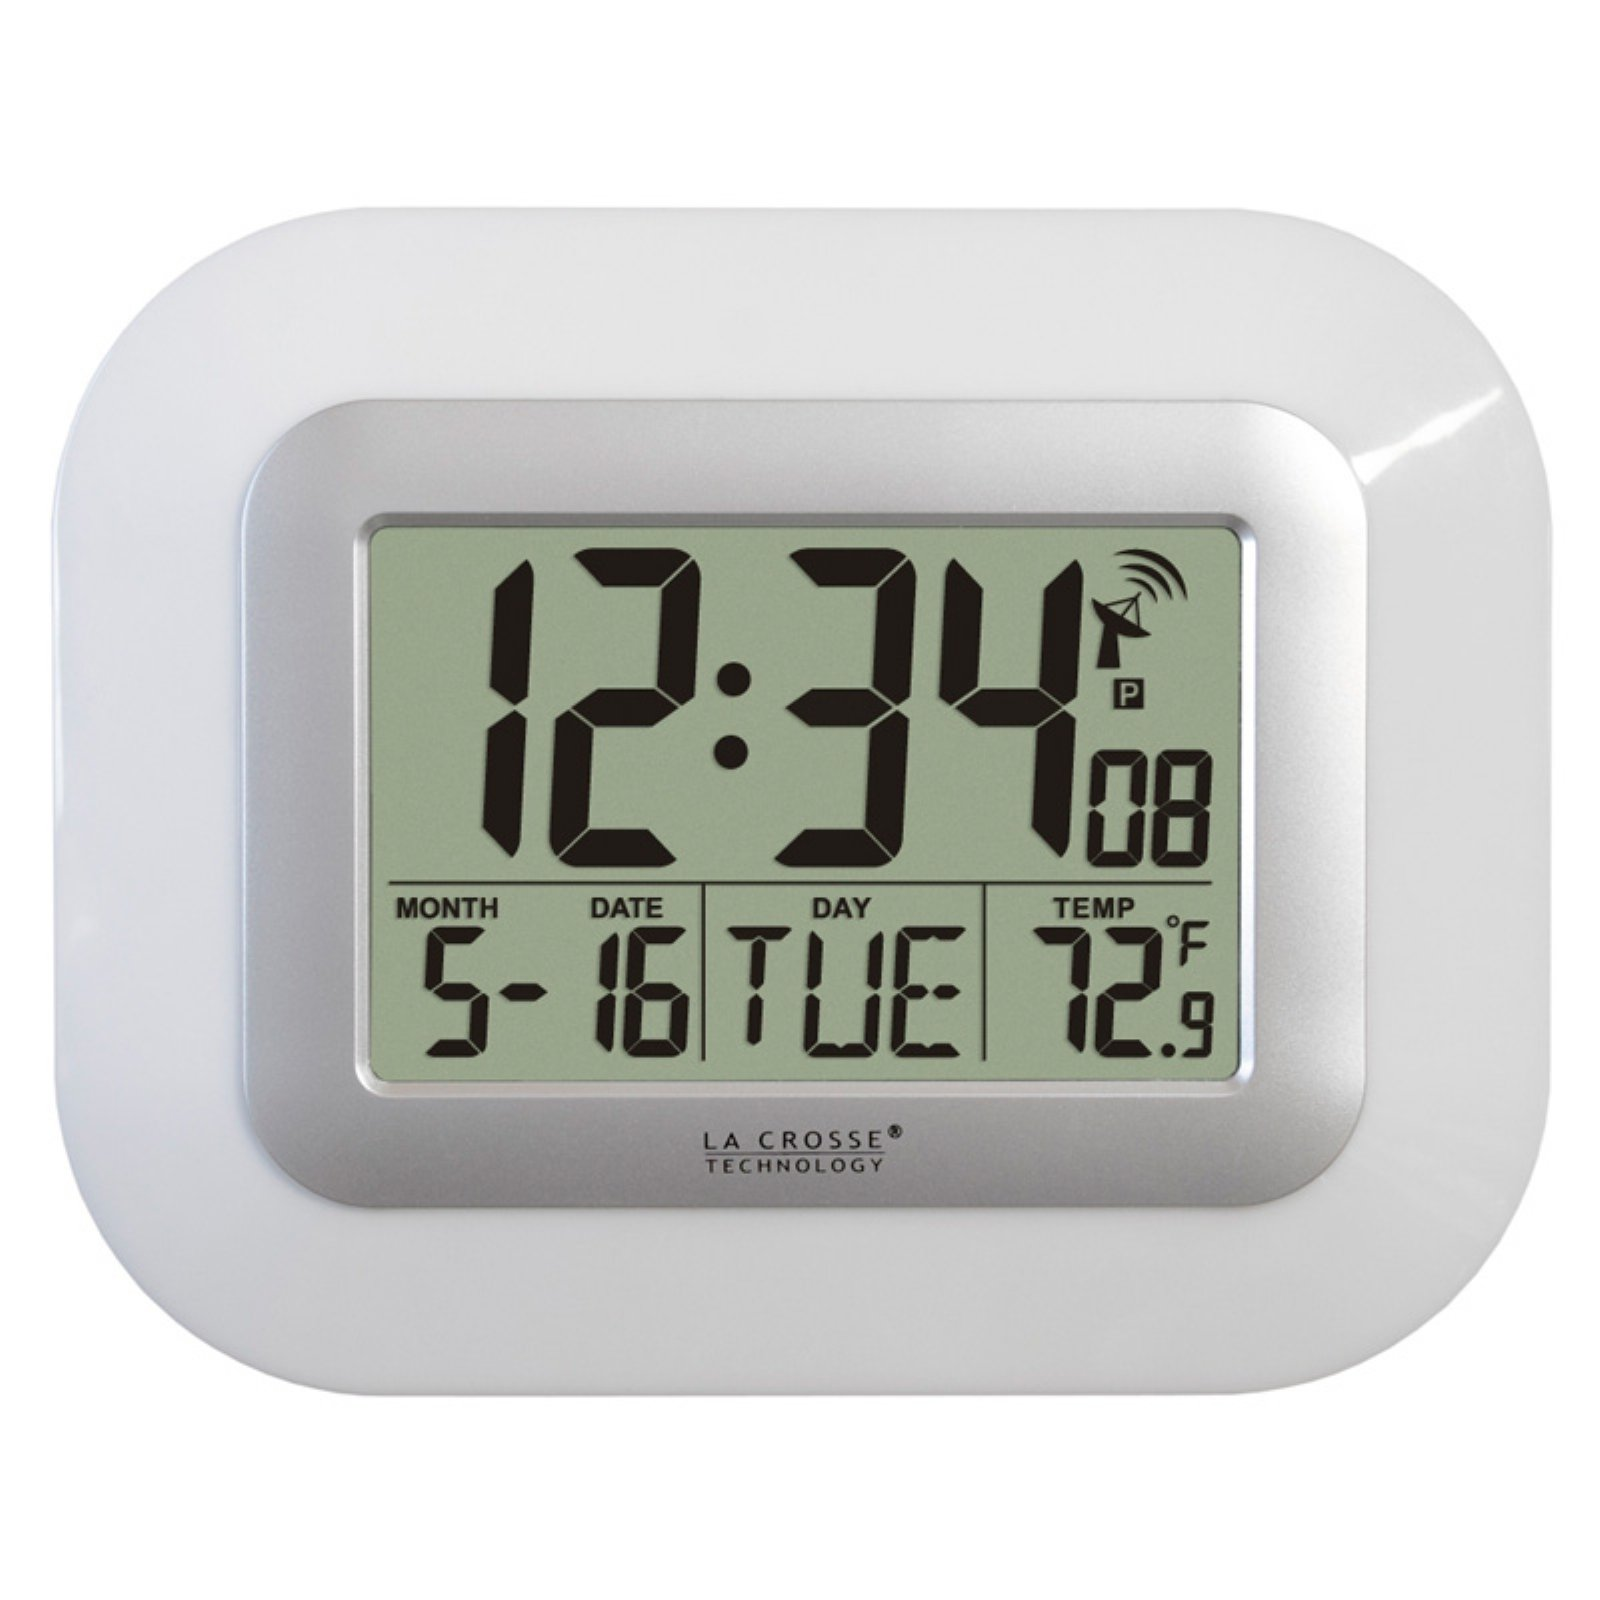 La Crosse Technology Wwvb Digital Clock